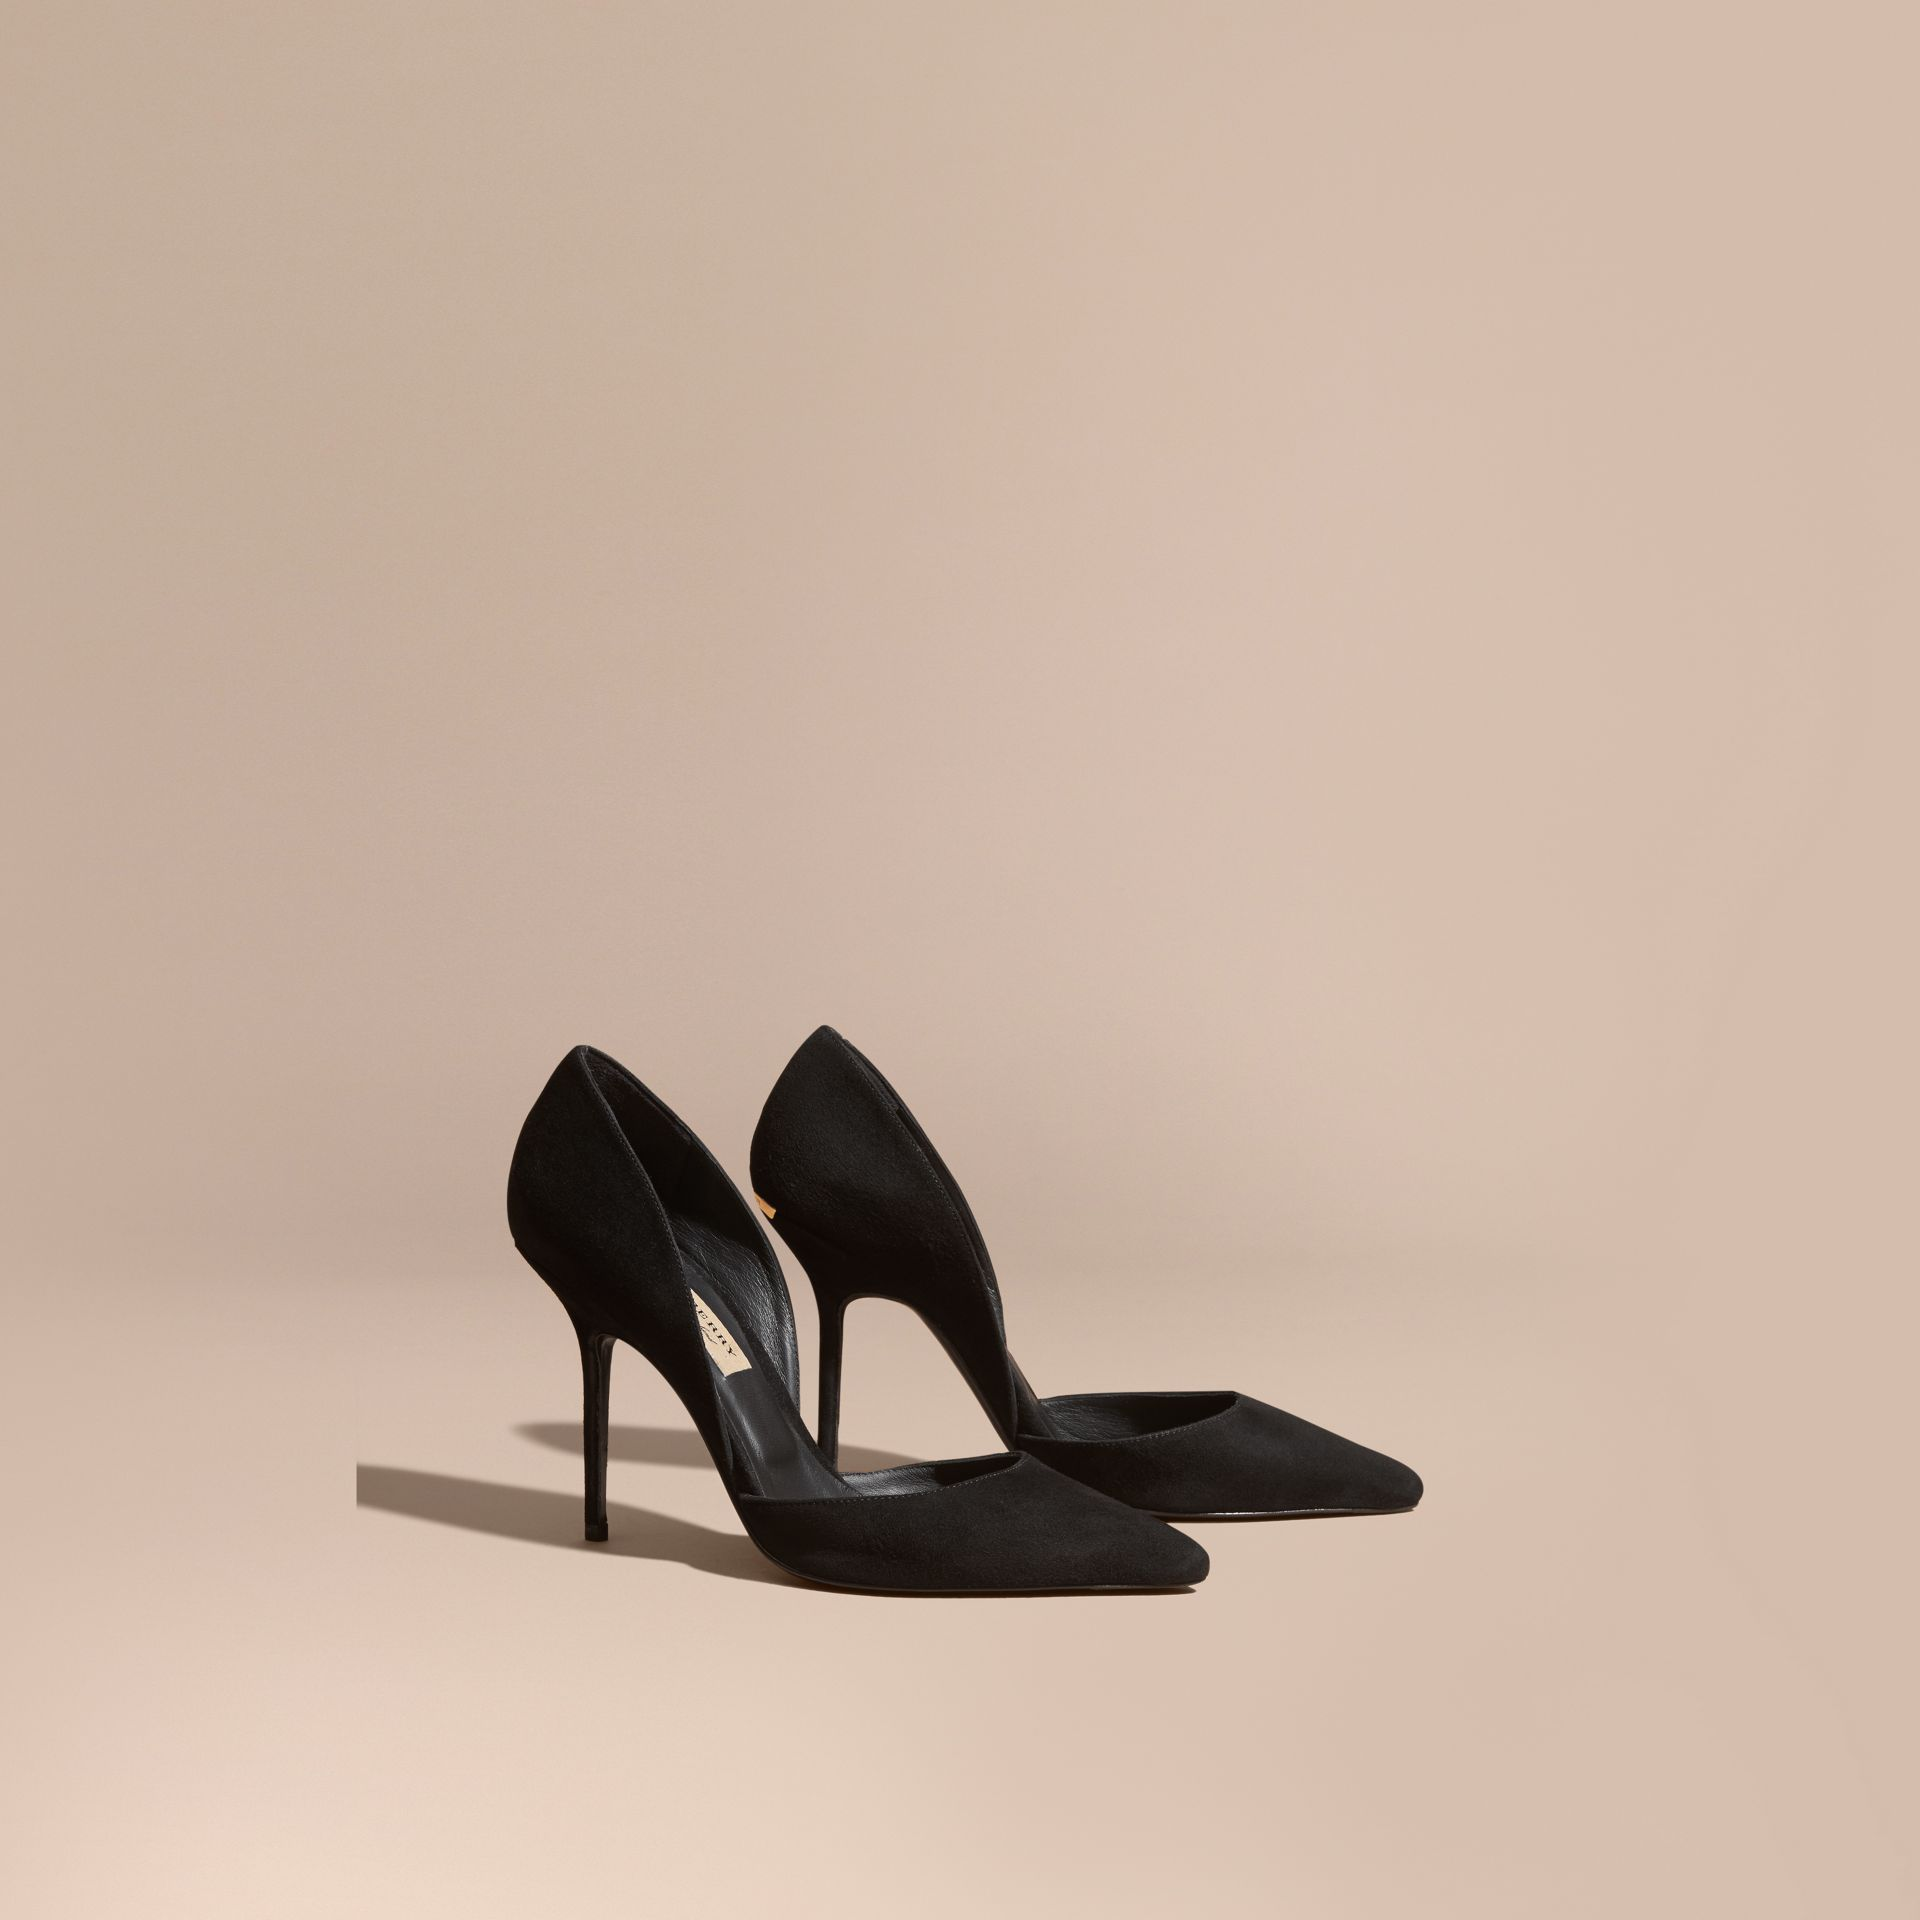 Point-toe Suede D'Orsay Pumps in Black - Women | Burberry - gallery image 1